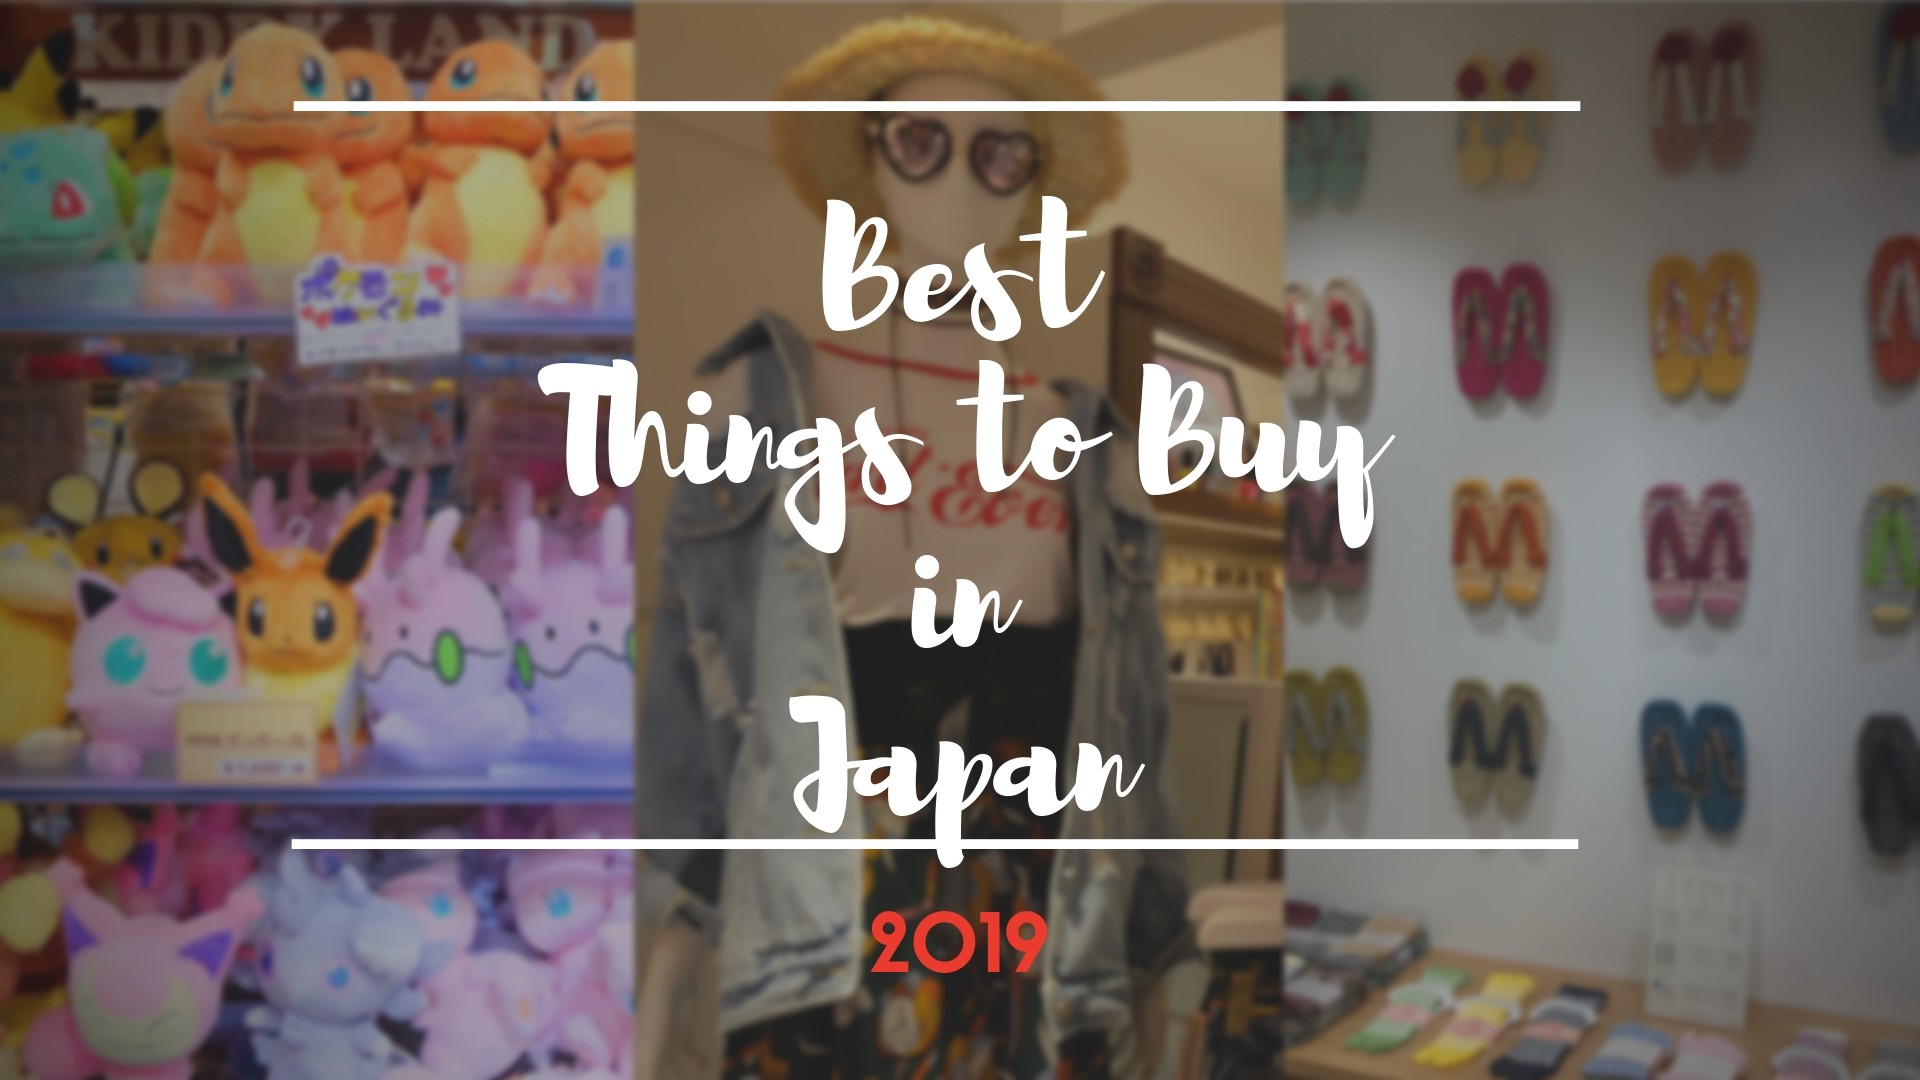 eb20410b93 What are most popular and trendy things to shop in Japan in 2019? If you  need a bit of help to decide what to buy in Japan, here is a complete list  ...